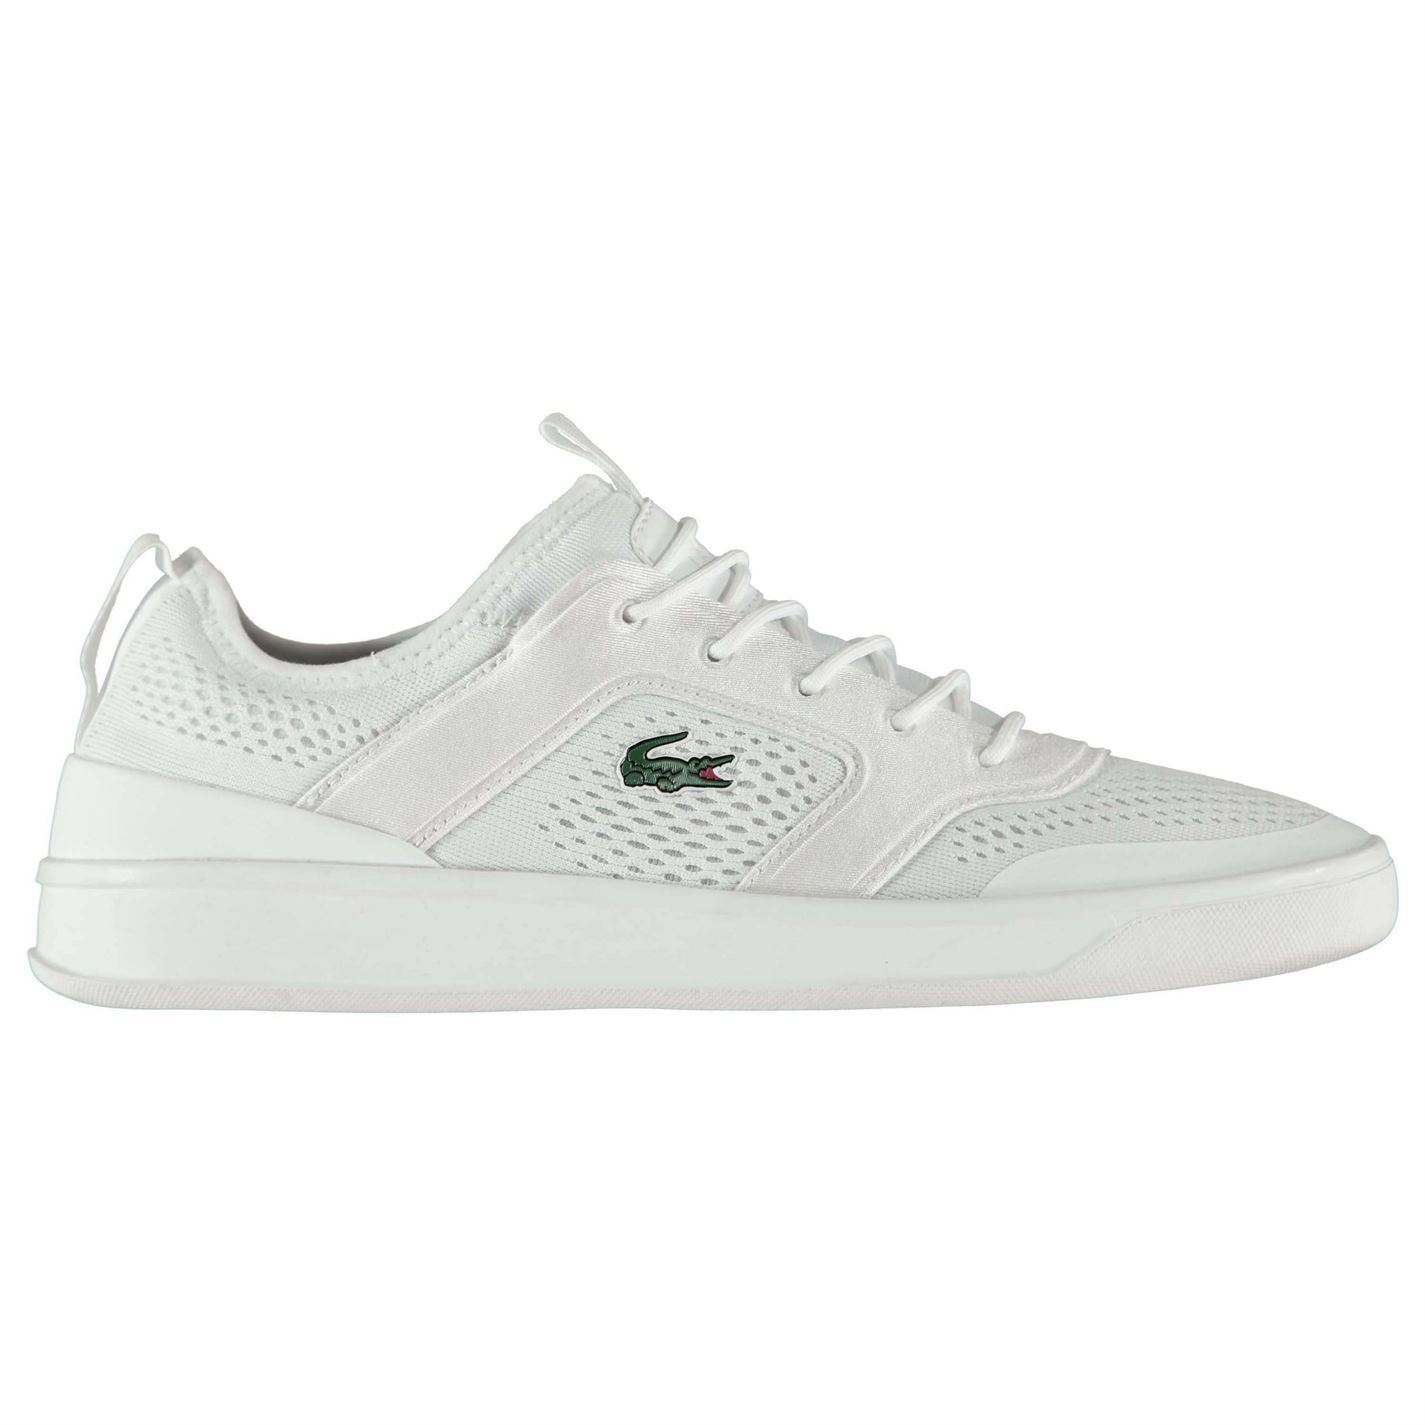 Explorateur Light Trainers In White - White Lacoste bZtYSGjd9l